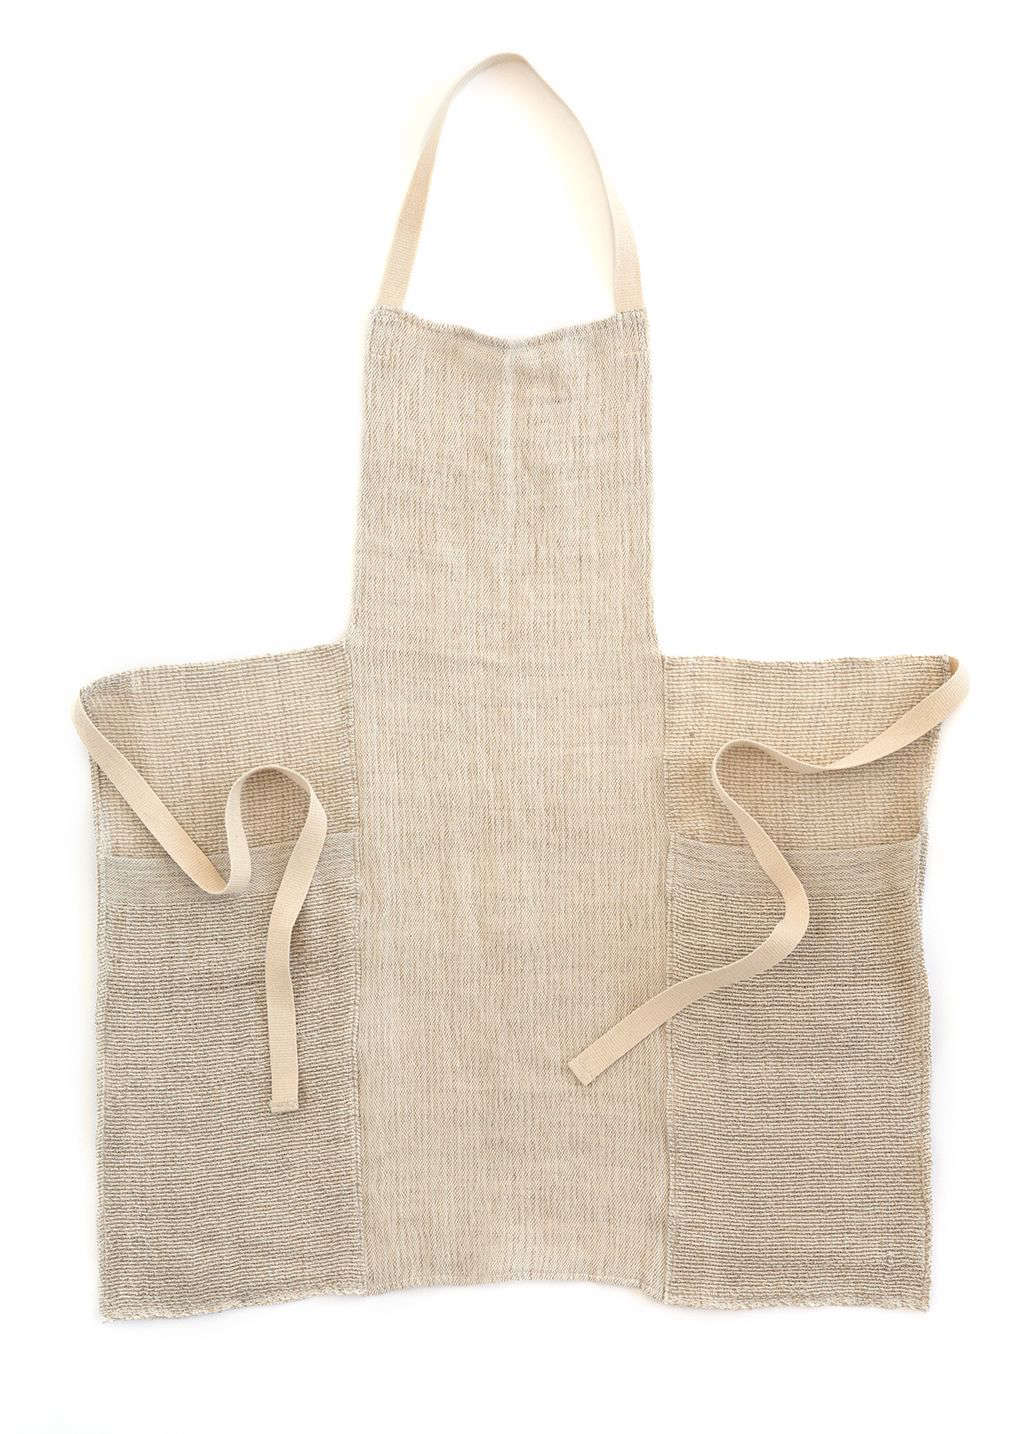 The third color in this style is a Natural Stripes Apron; $8.